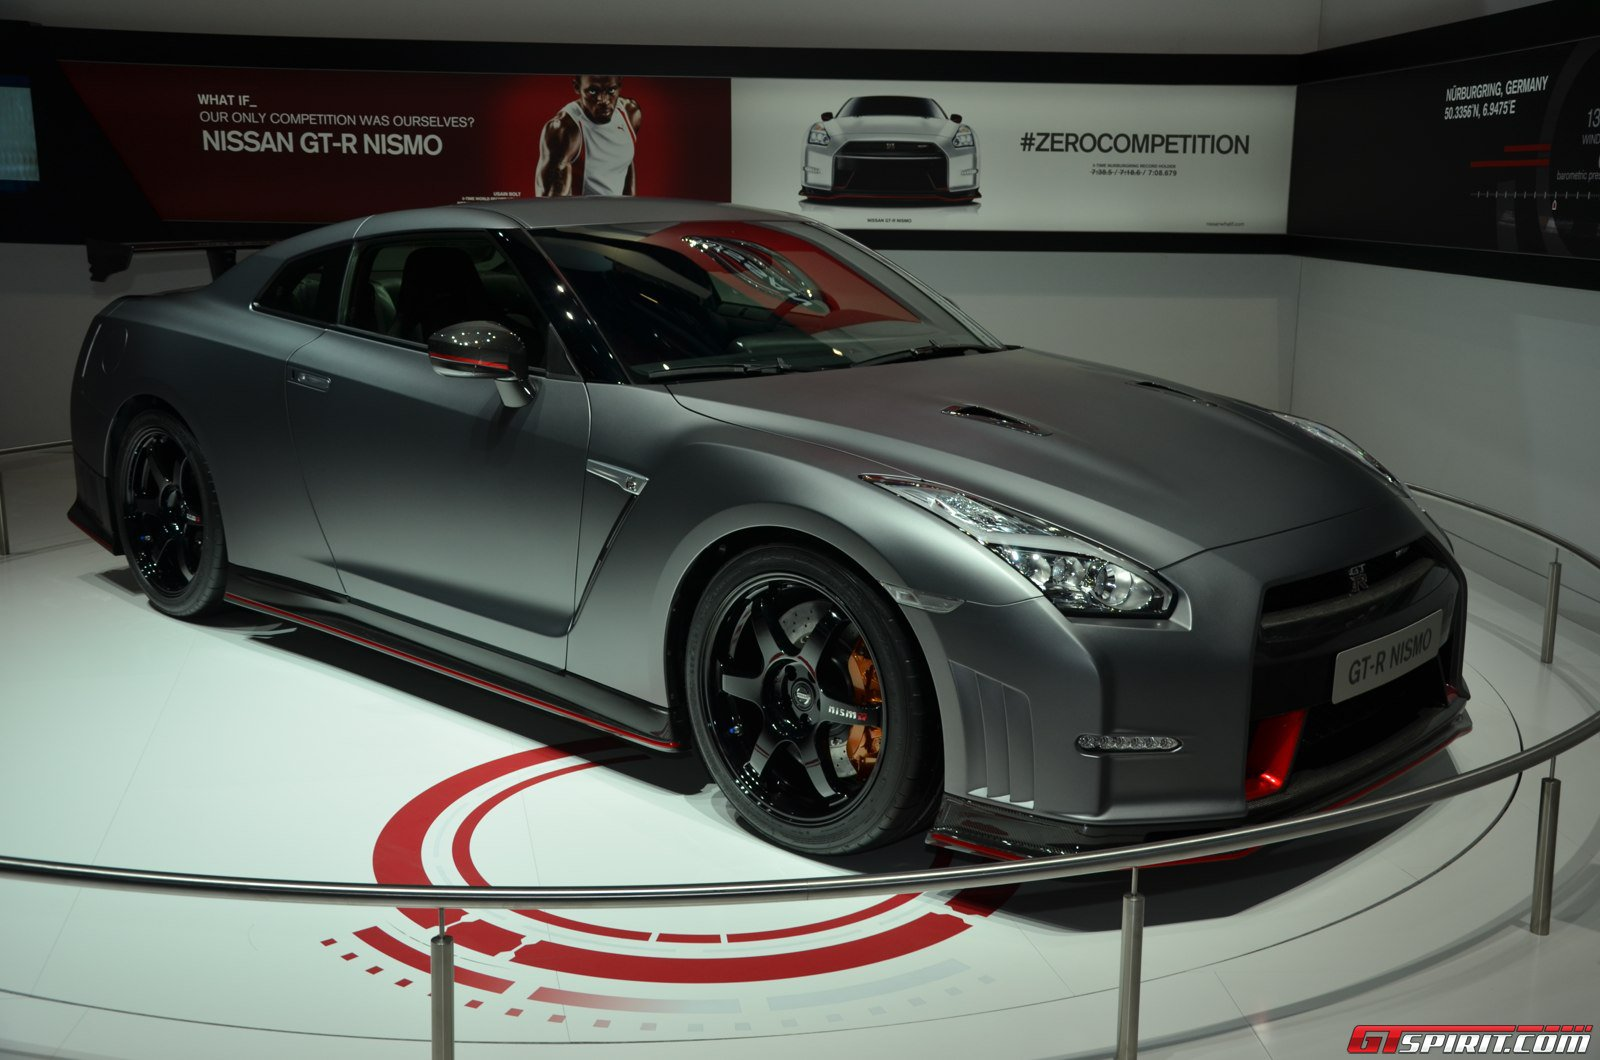 geneva 2014 nissan gt r nismo gtspirit. Black Bedroom Furniture Sets. Home Design Ideas